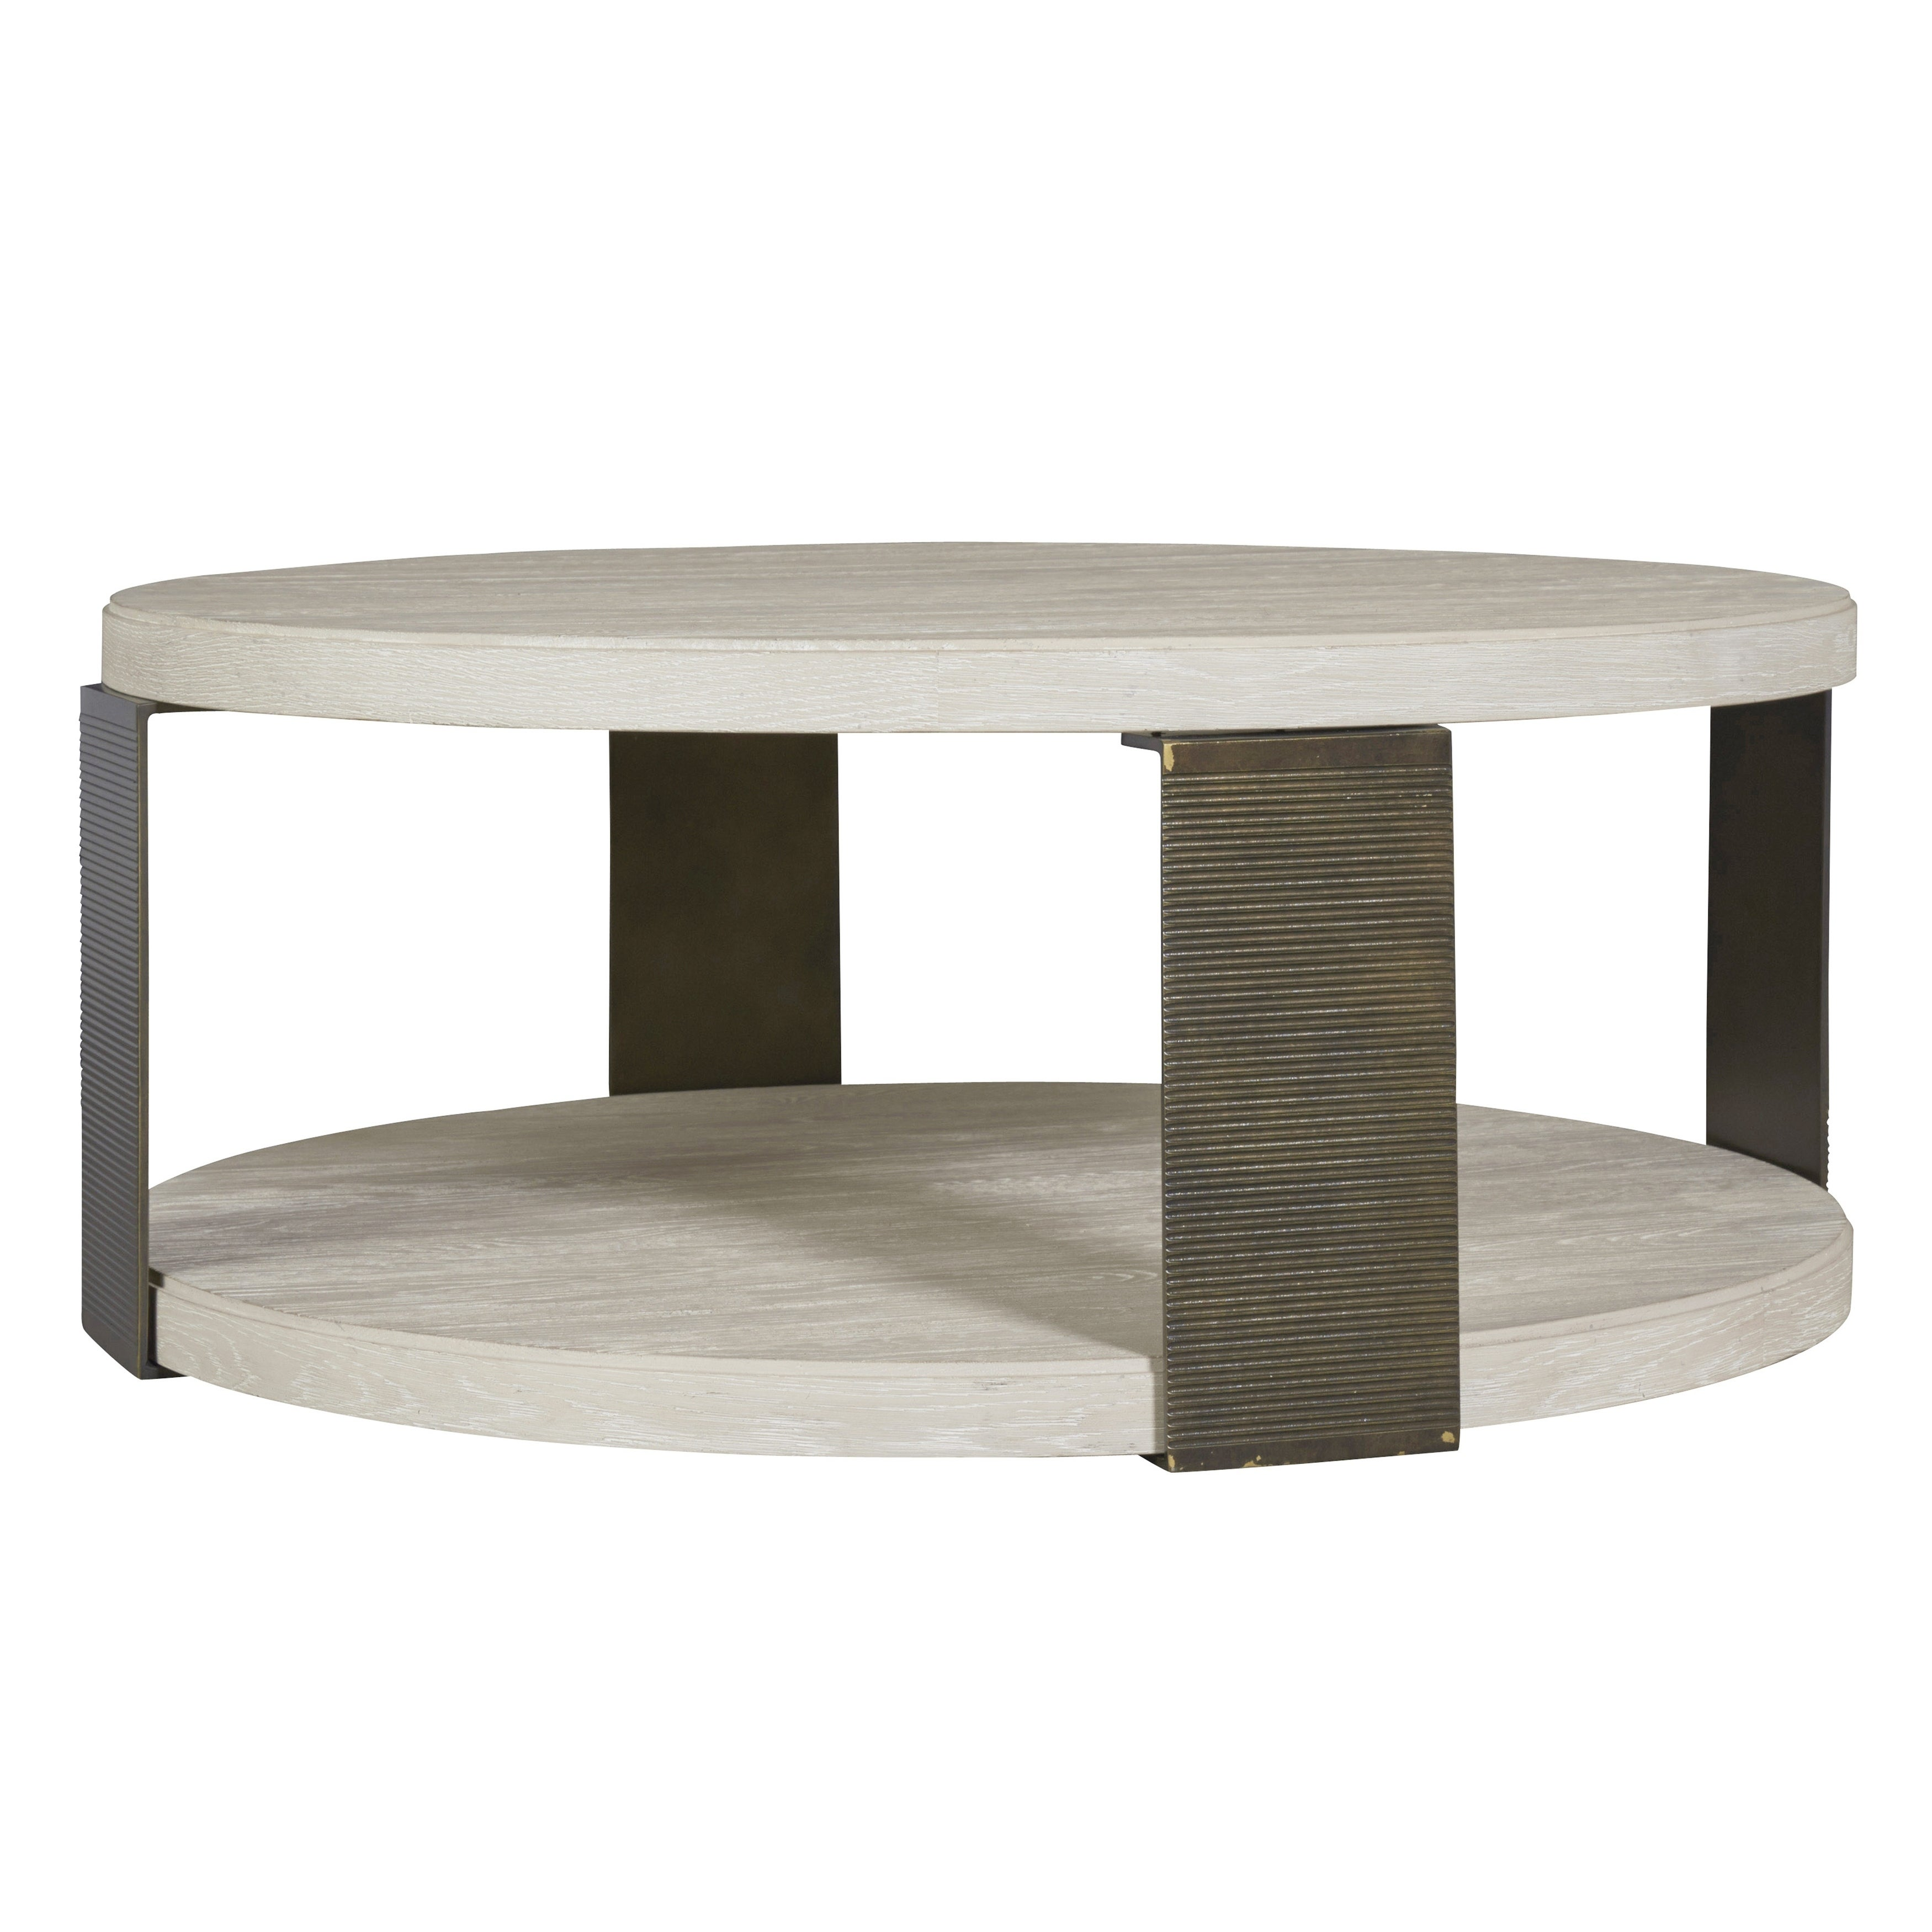 Shop modern bronze and quartz round wilder cocktail table free shipping today overstock com 18705047